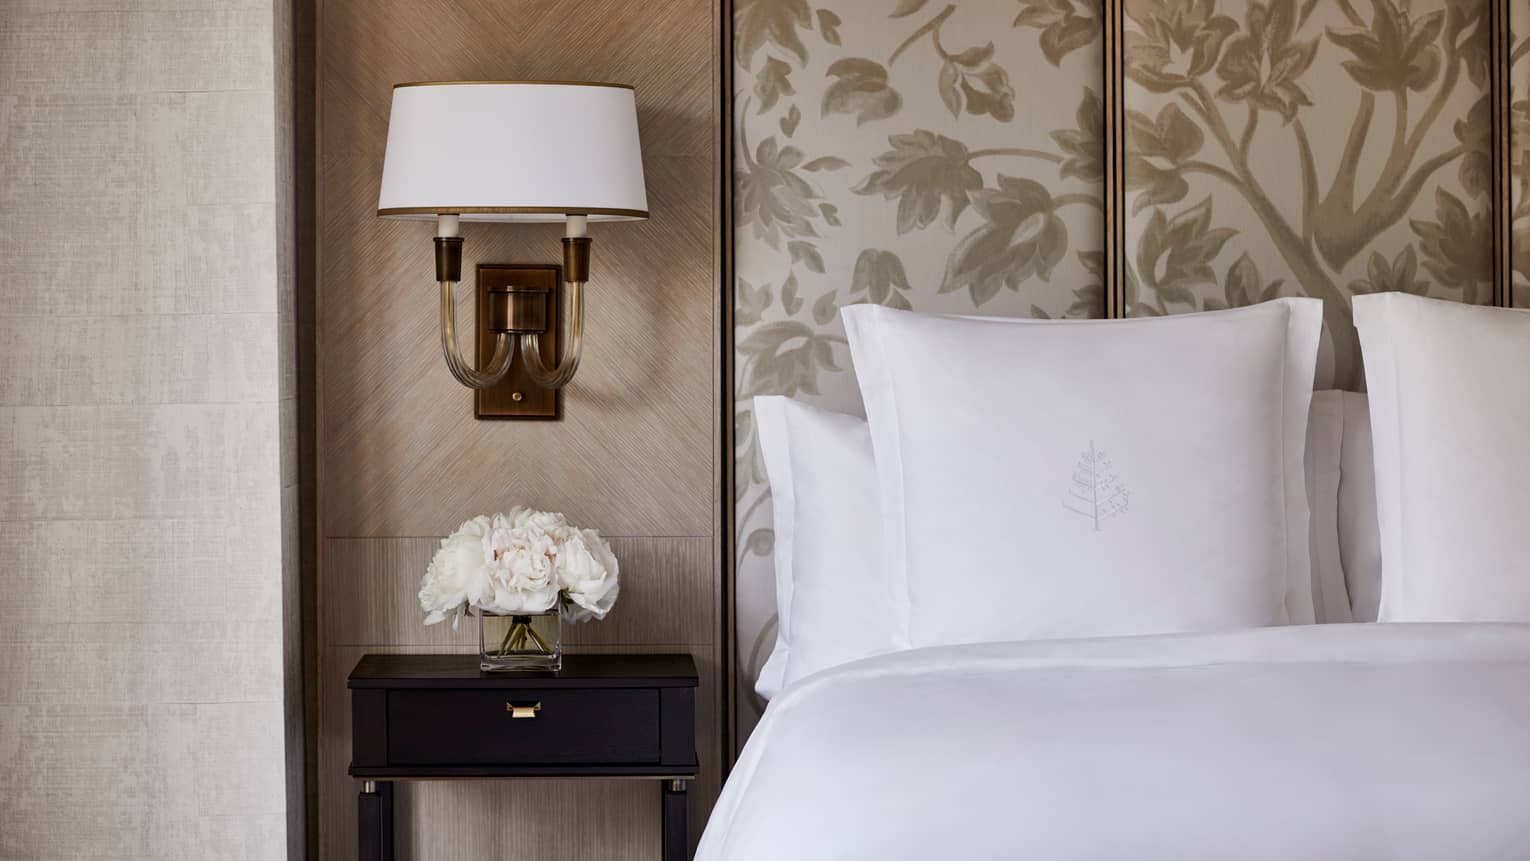 Deluxe Accessible Room close-up of bed, white pillows, beige headboard, small reading lamp on wall, white flowers on nightstand